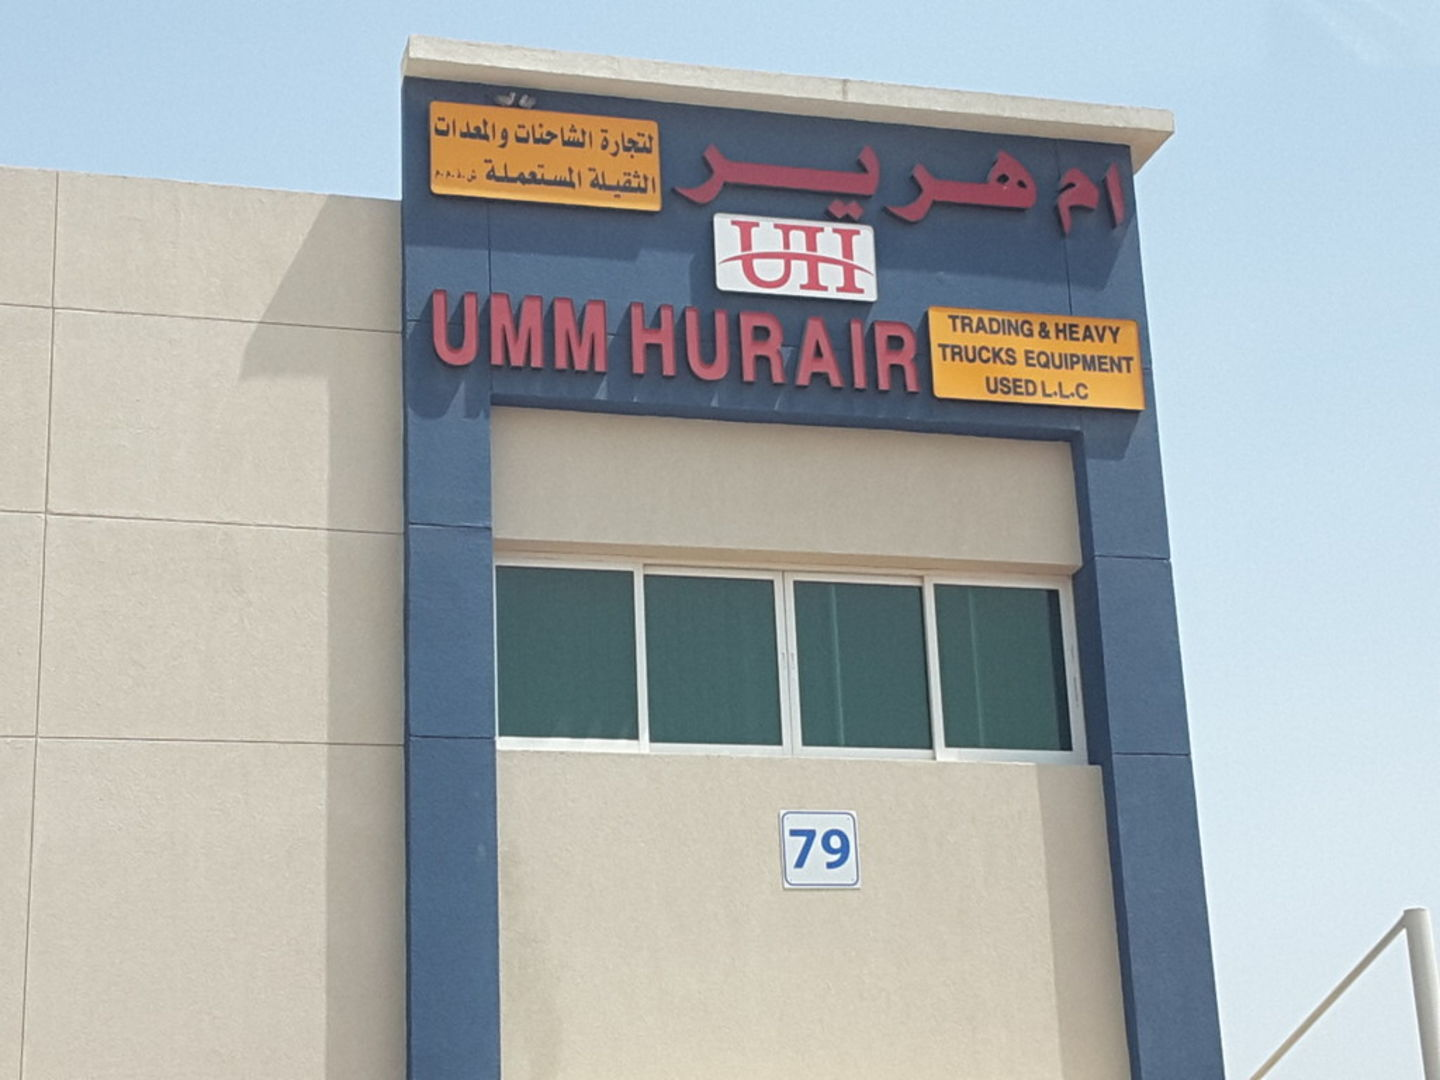 HiDubai-business-umm-hurair-trading-and-heavy-trucks-equipment-used-transport-vehicle-services-heavy-vehicles-rentals-dubai-outsource-zone-al-rowaiyah-3-dubai-2